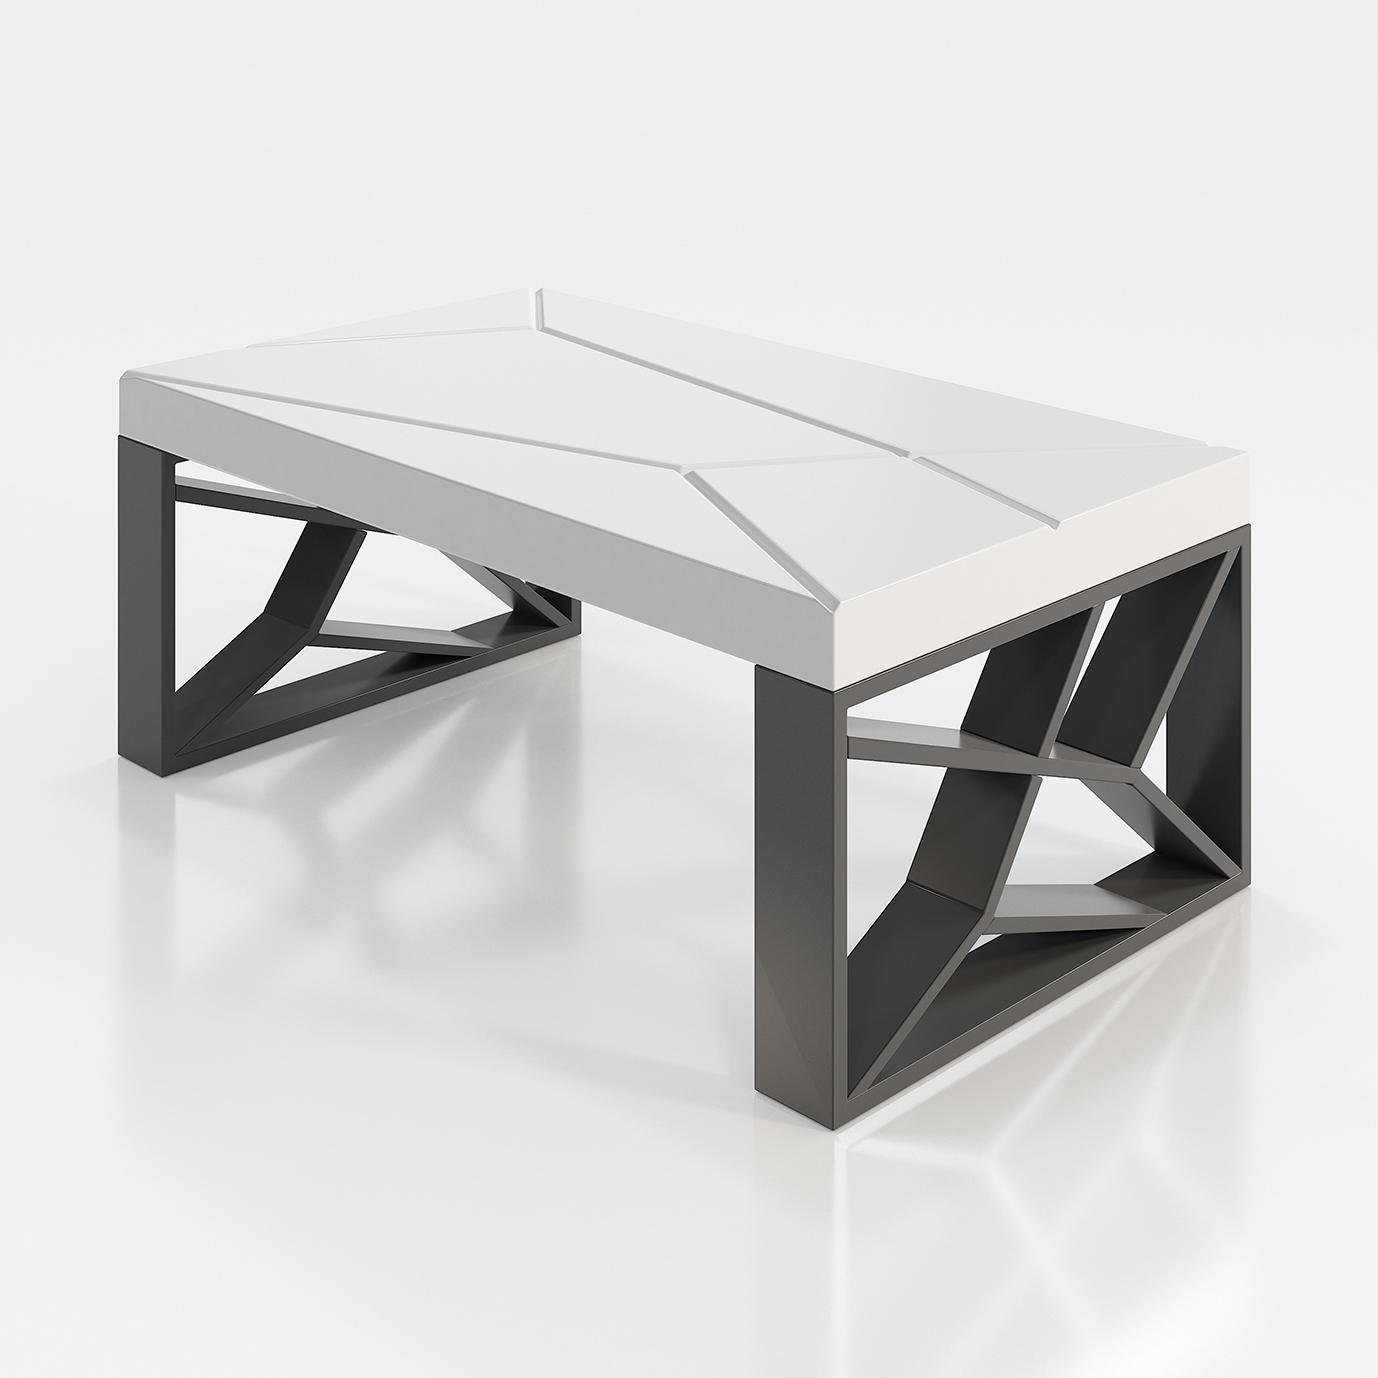 2017 Flat Black And Cobre Coffee Tables With Regard To ▷ Coffee Tables: The Perfect Complement To The Hall ® (View 17 of 20)